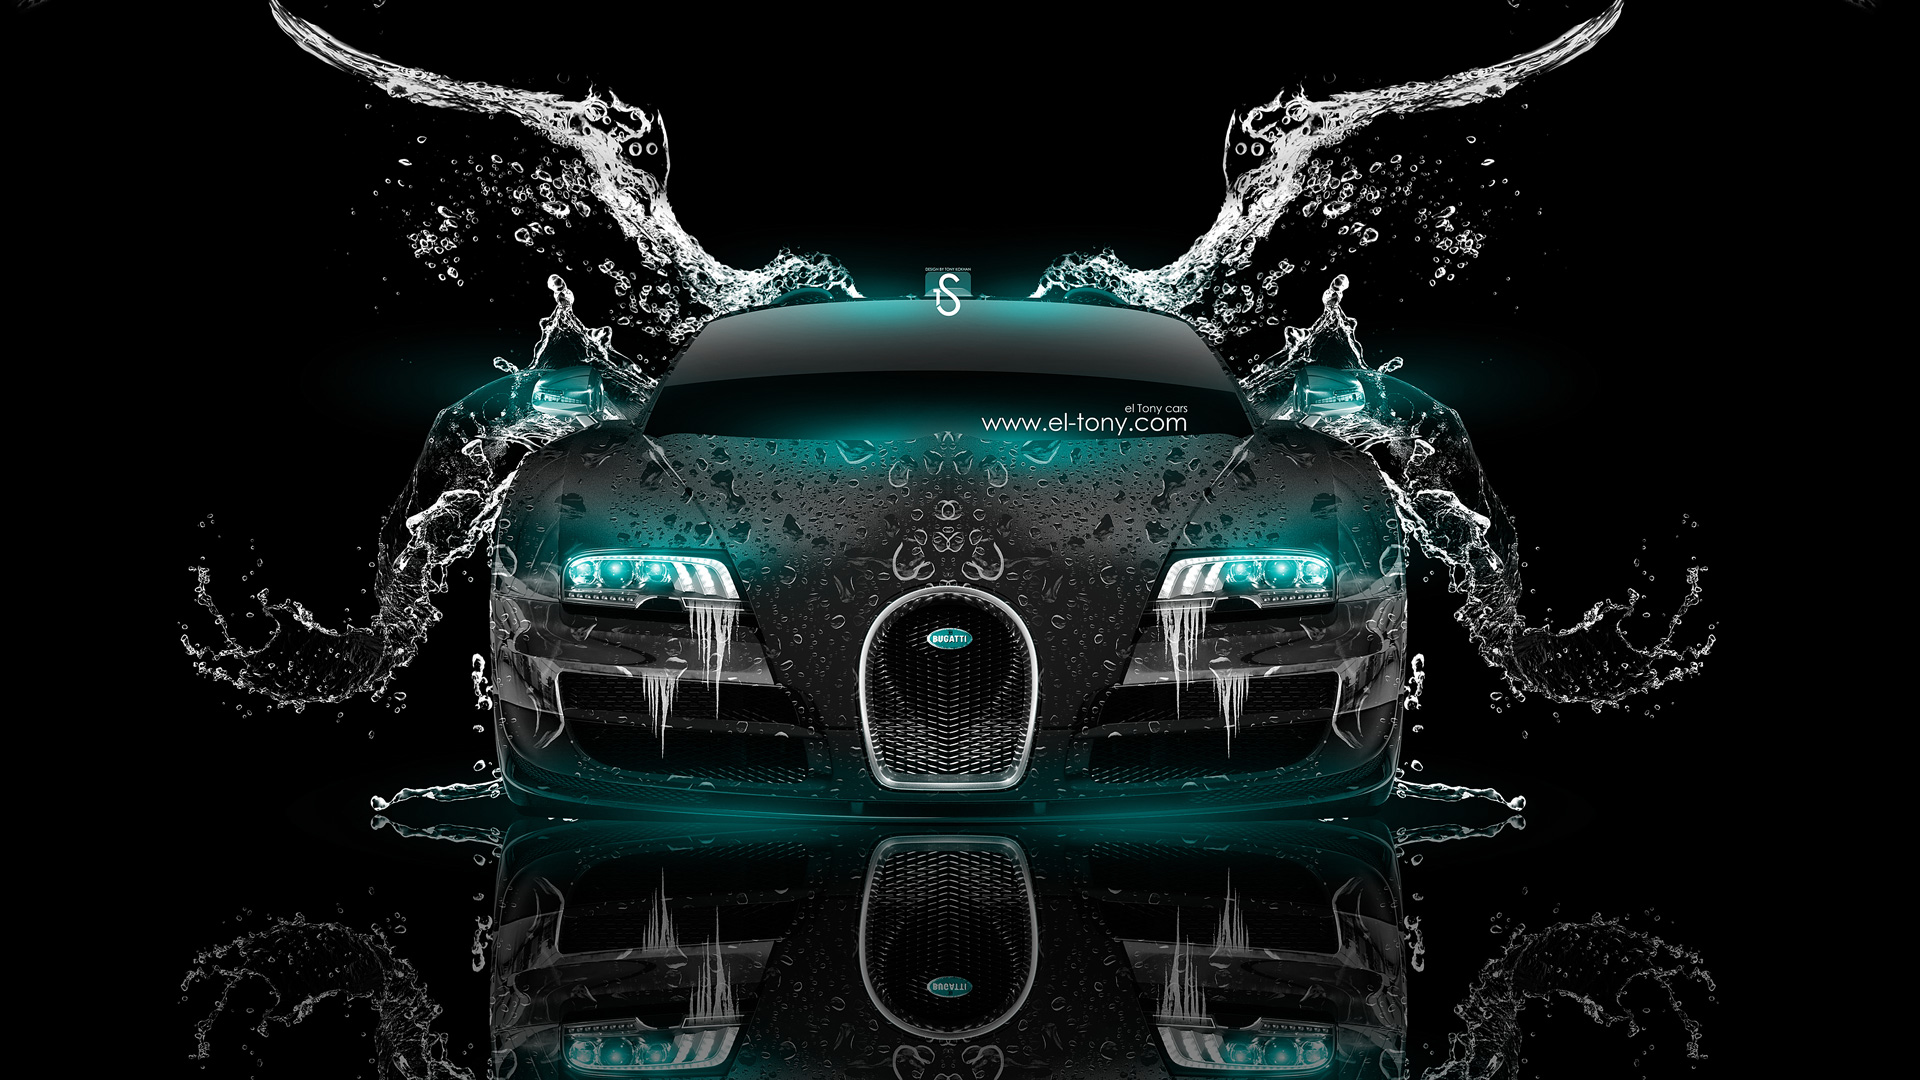 Perfect Bugatti Veyron Up Crystal City Car 2014 · Bugatti Veyron Front Water Car  2014